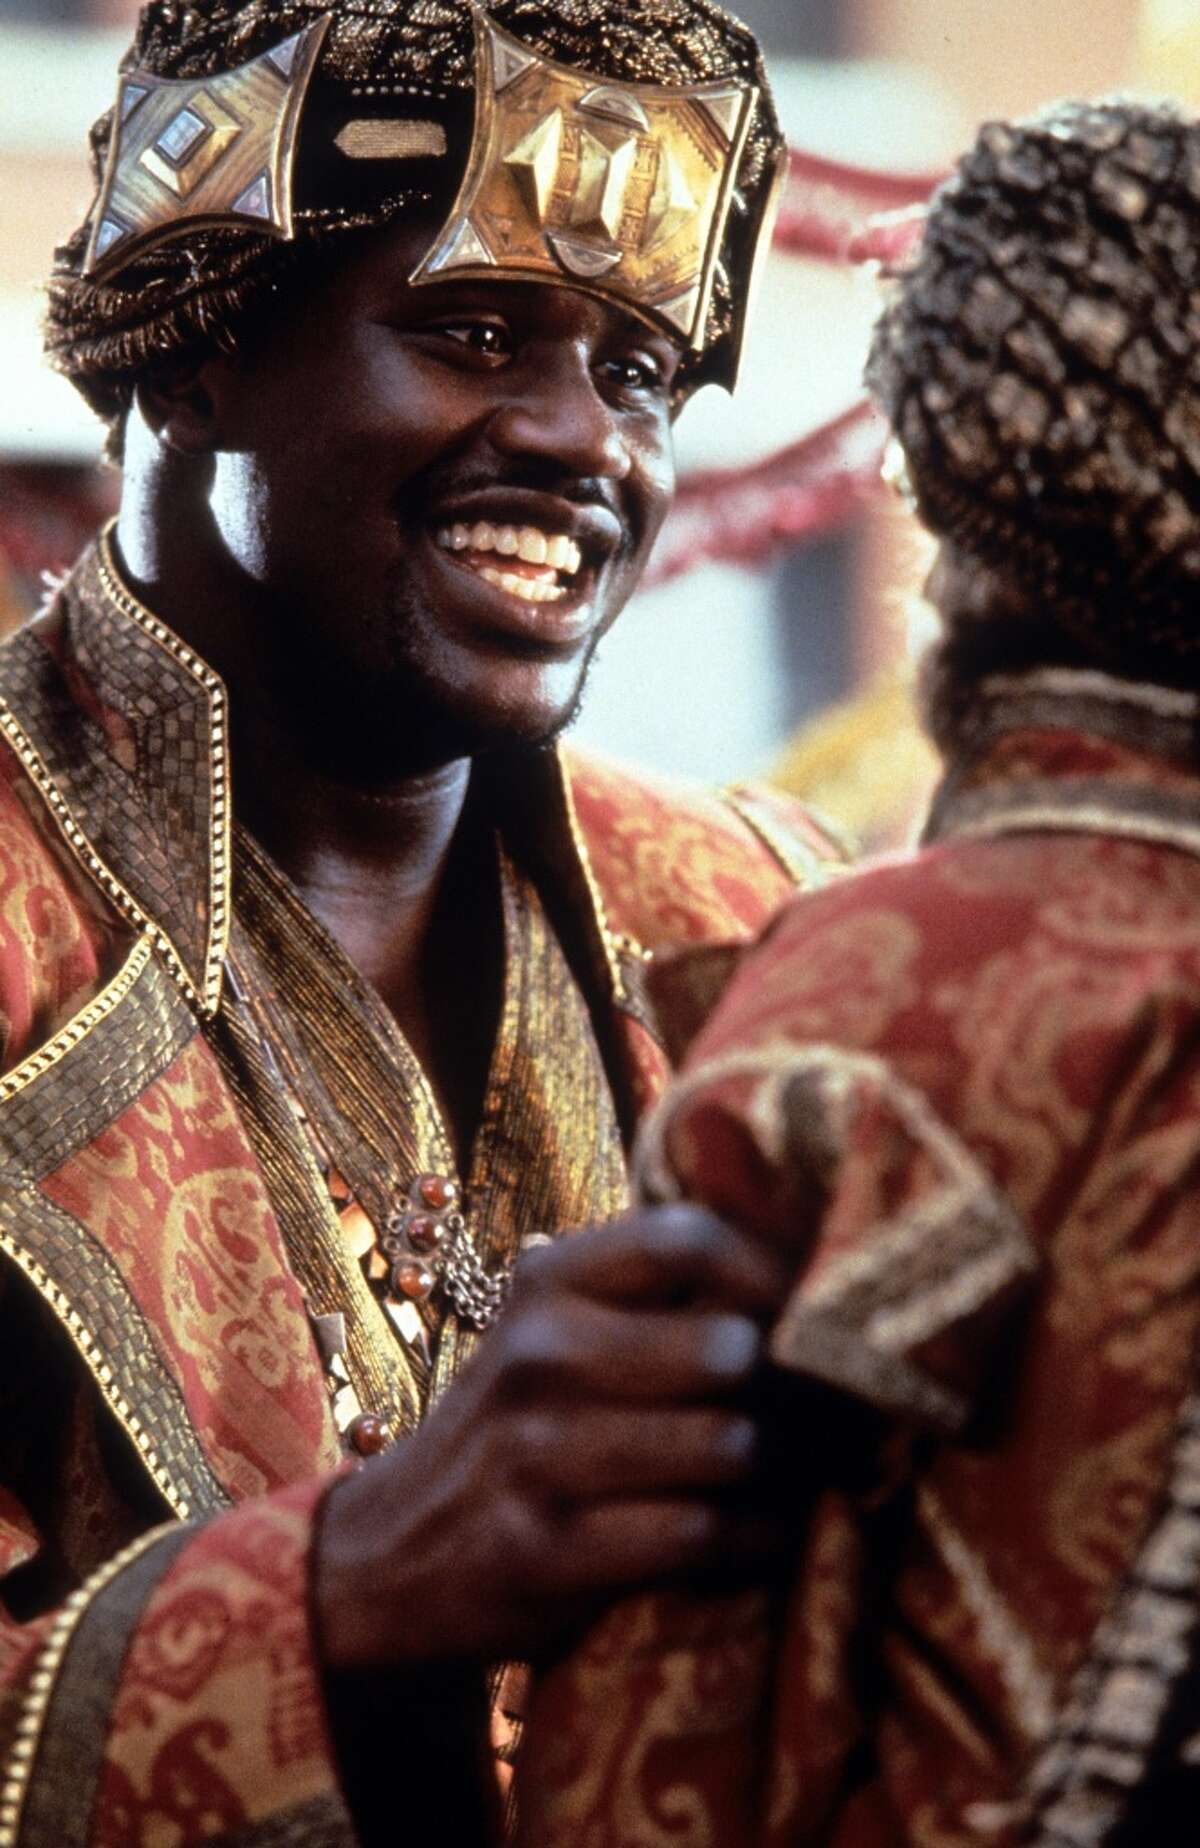 """Shaquille O'Neal, NBA Shaq was all over the place in the 1990s, cutting four rap albums and even had a """"Best of Shaquille O'Neal"""" compilation (we're not kidding). He also starred as the title genie in the awesomely bad flick """"Kazaam."""""""